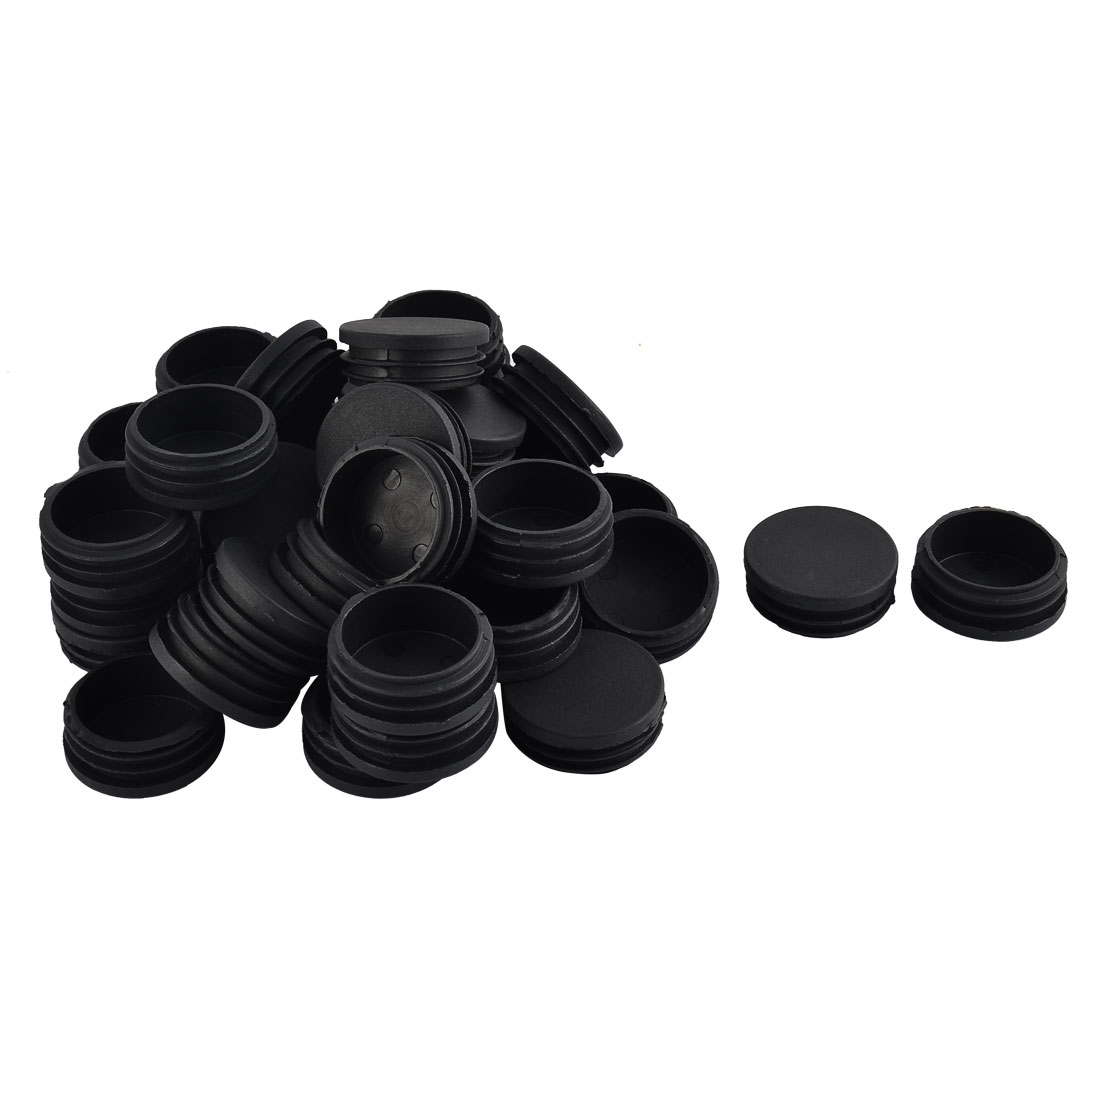 Furniture Table Chair Legs Plastic Round Tube Pipe Insert Cap Cover Black 45mm Dia 40pcs